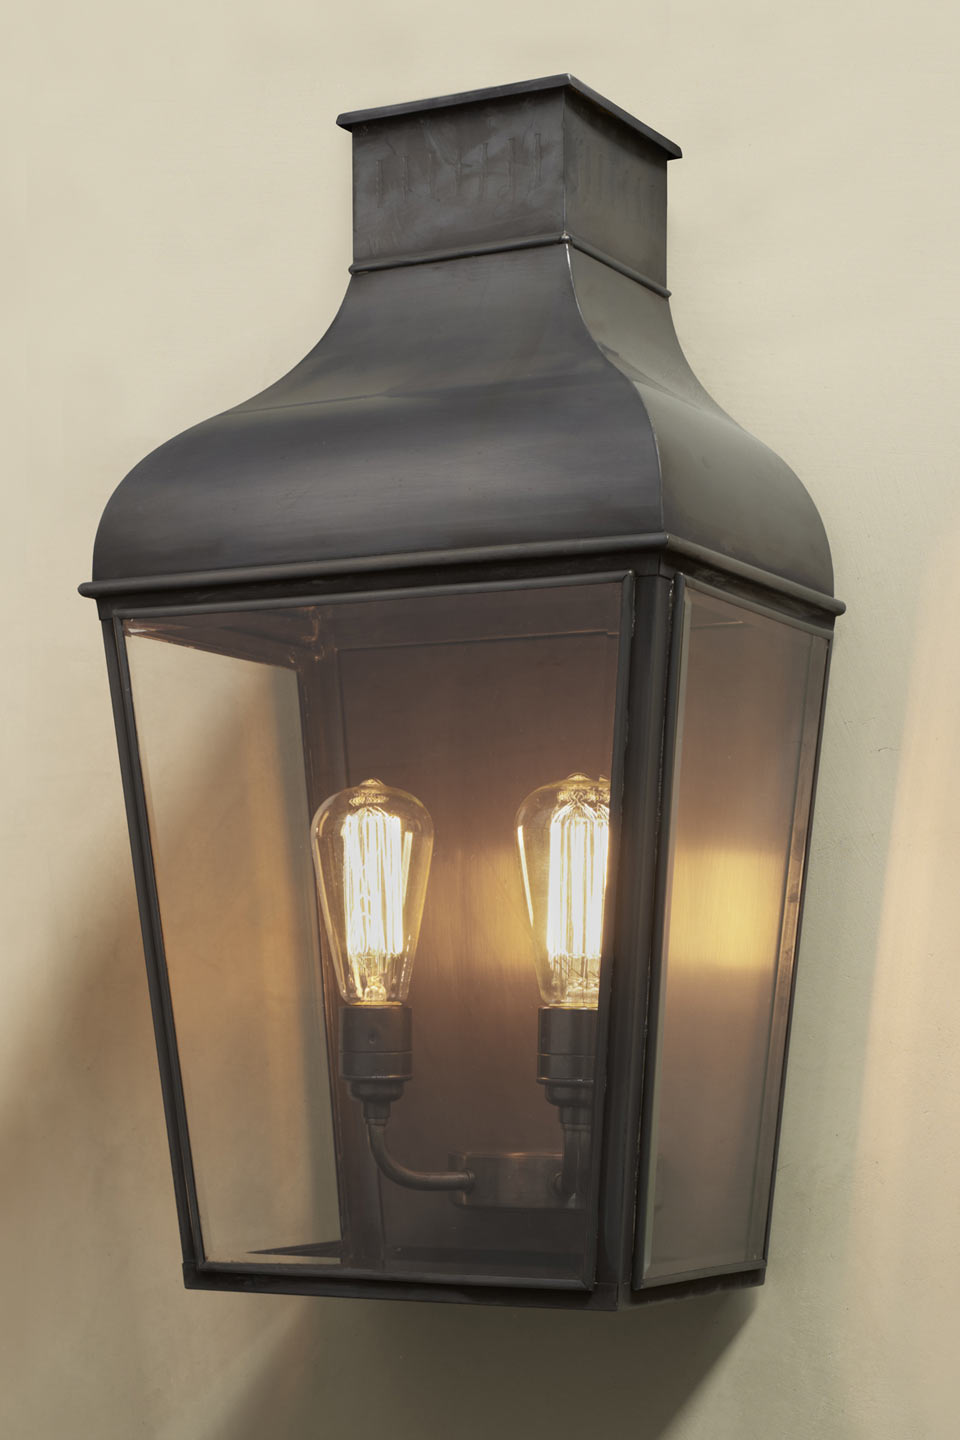 Lanterne double d 39 ext rieur en bronze antique montrose for Luminaire exterieur double